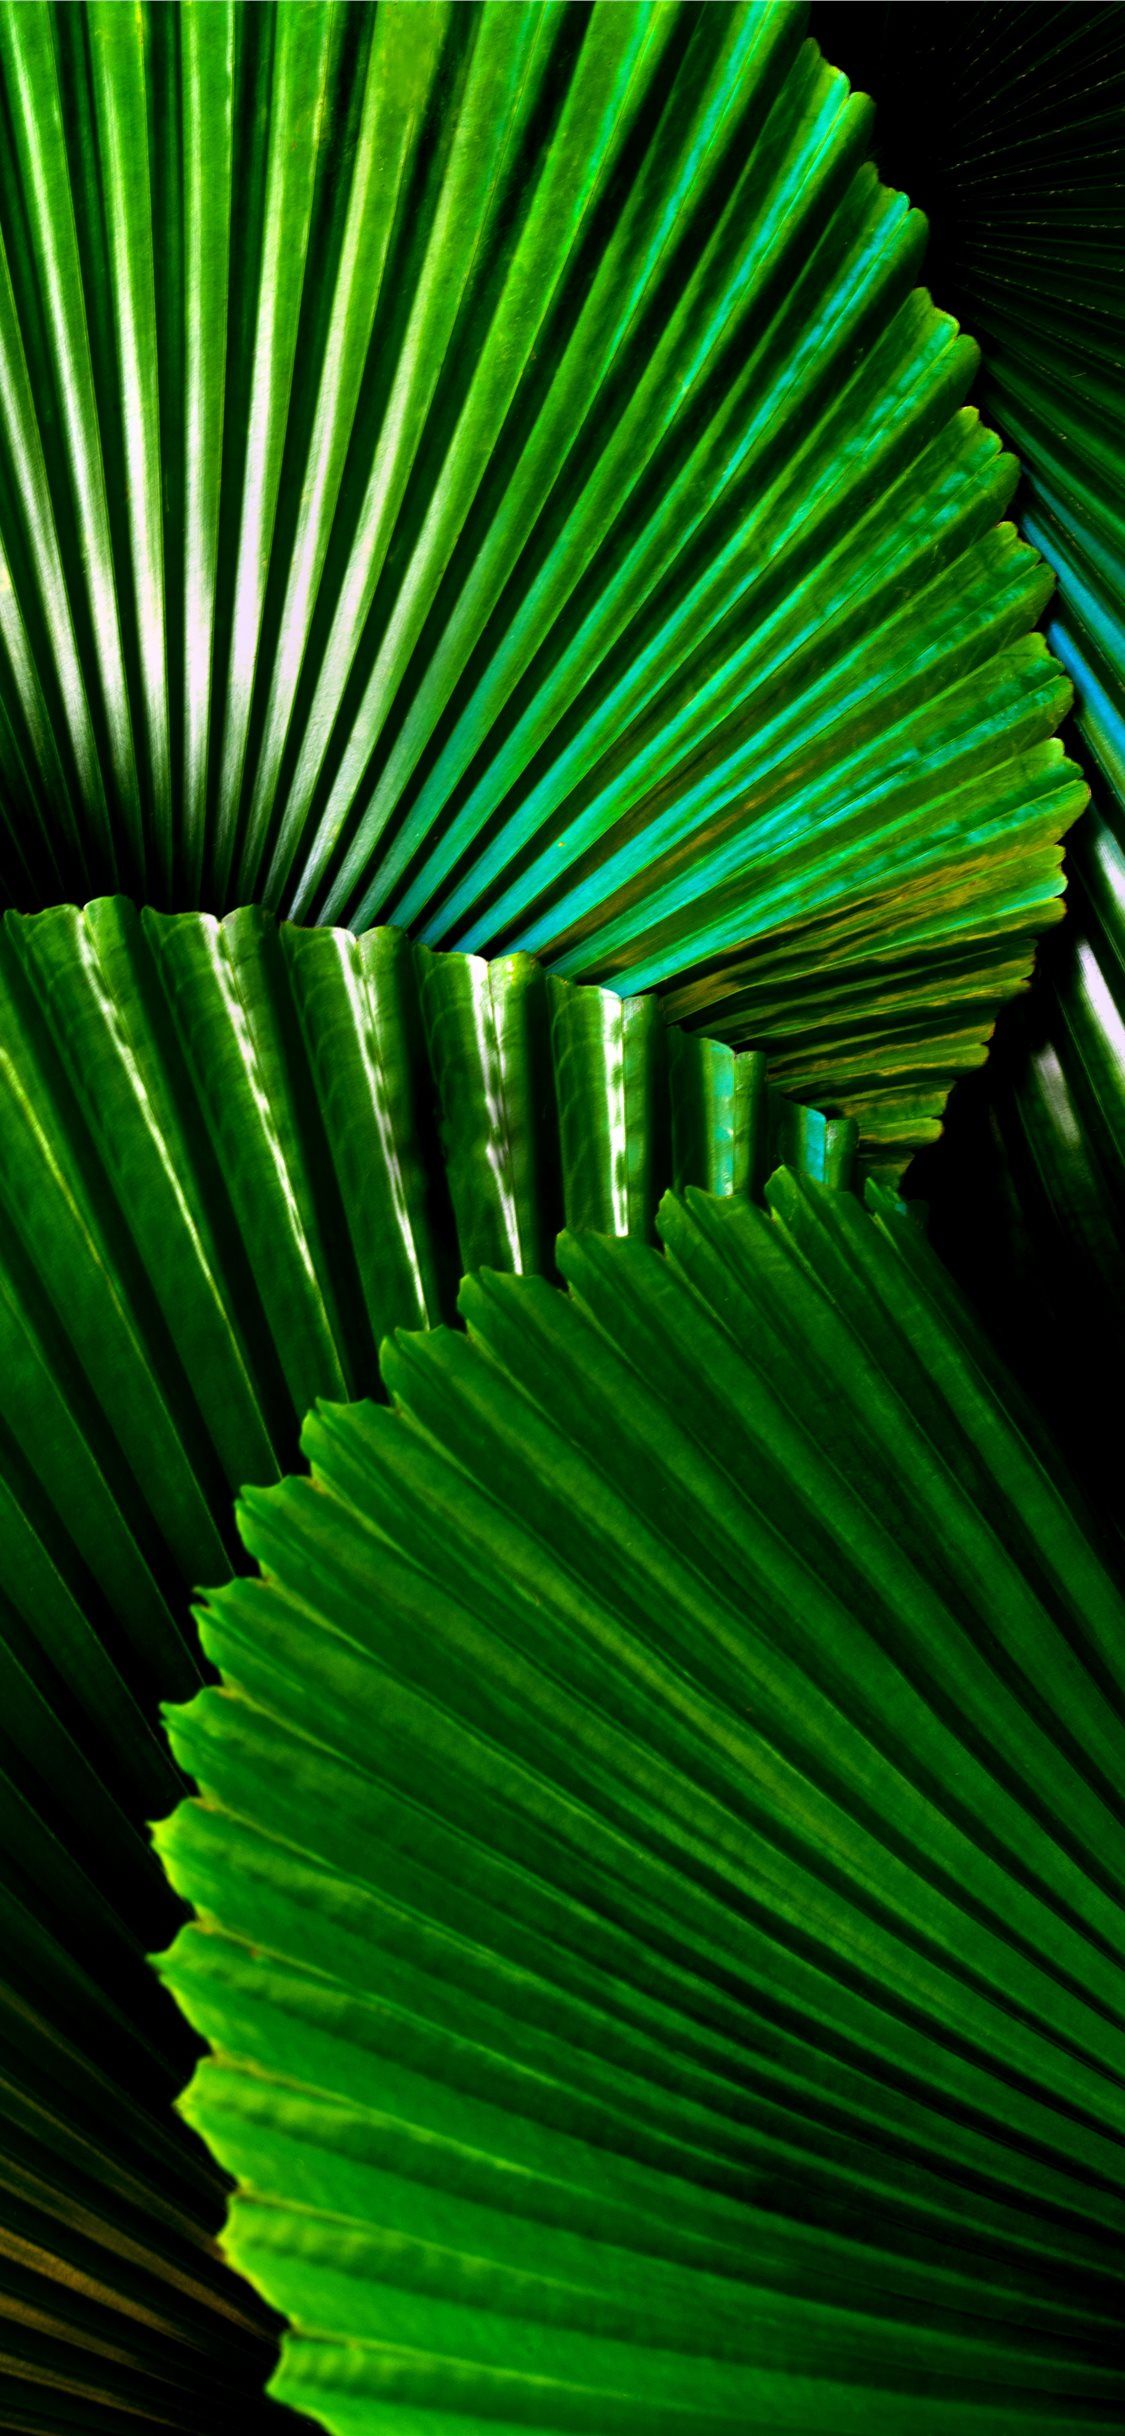 Free download the green leafed plant Wallpaper wallpaper